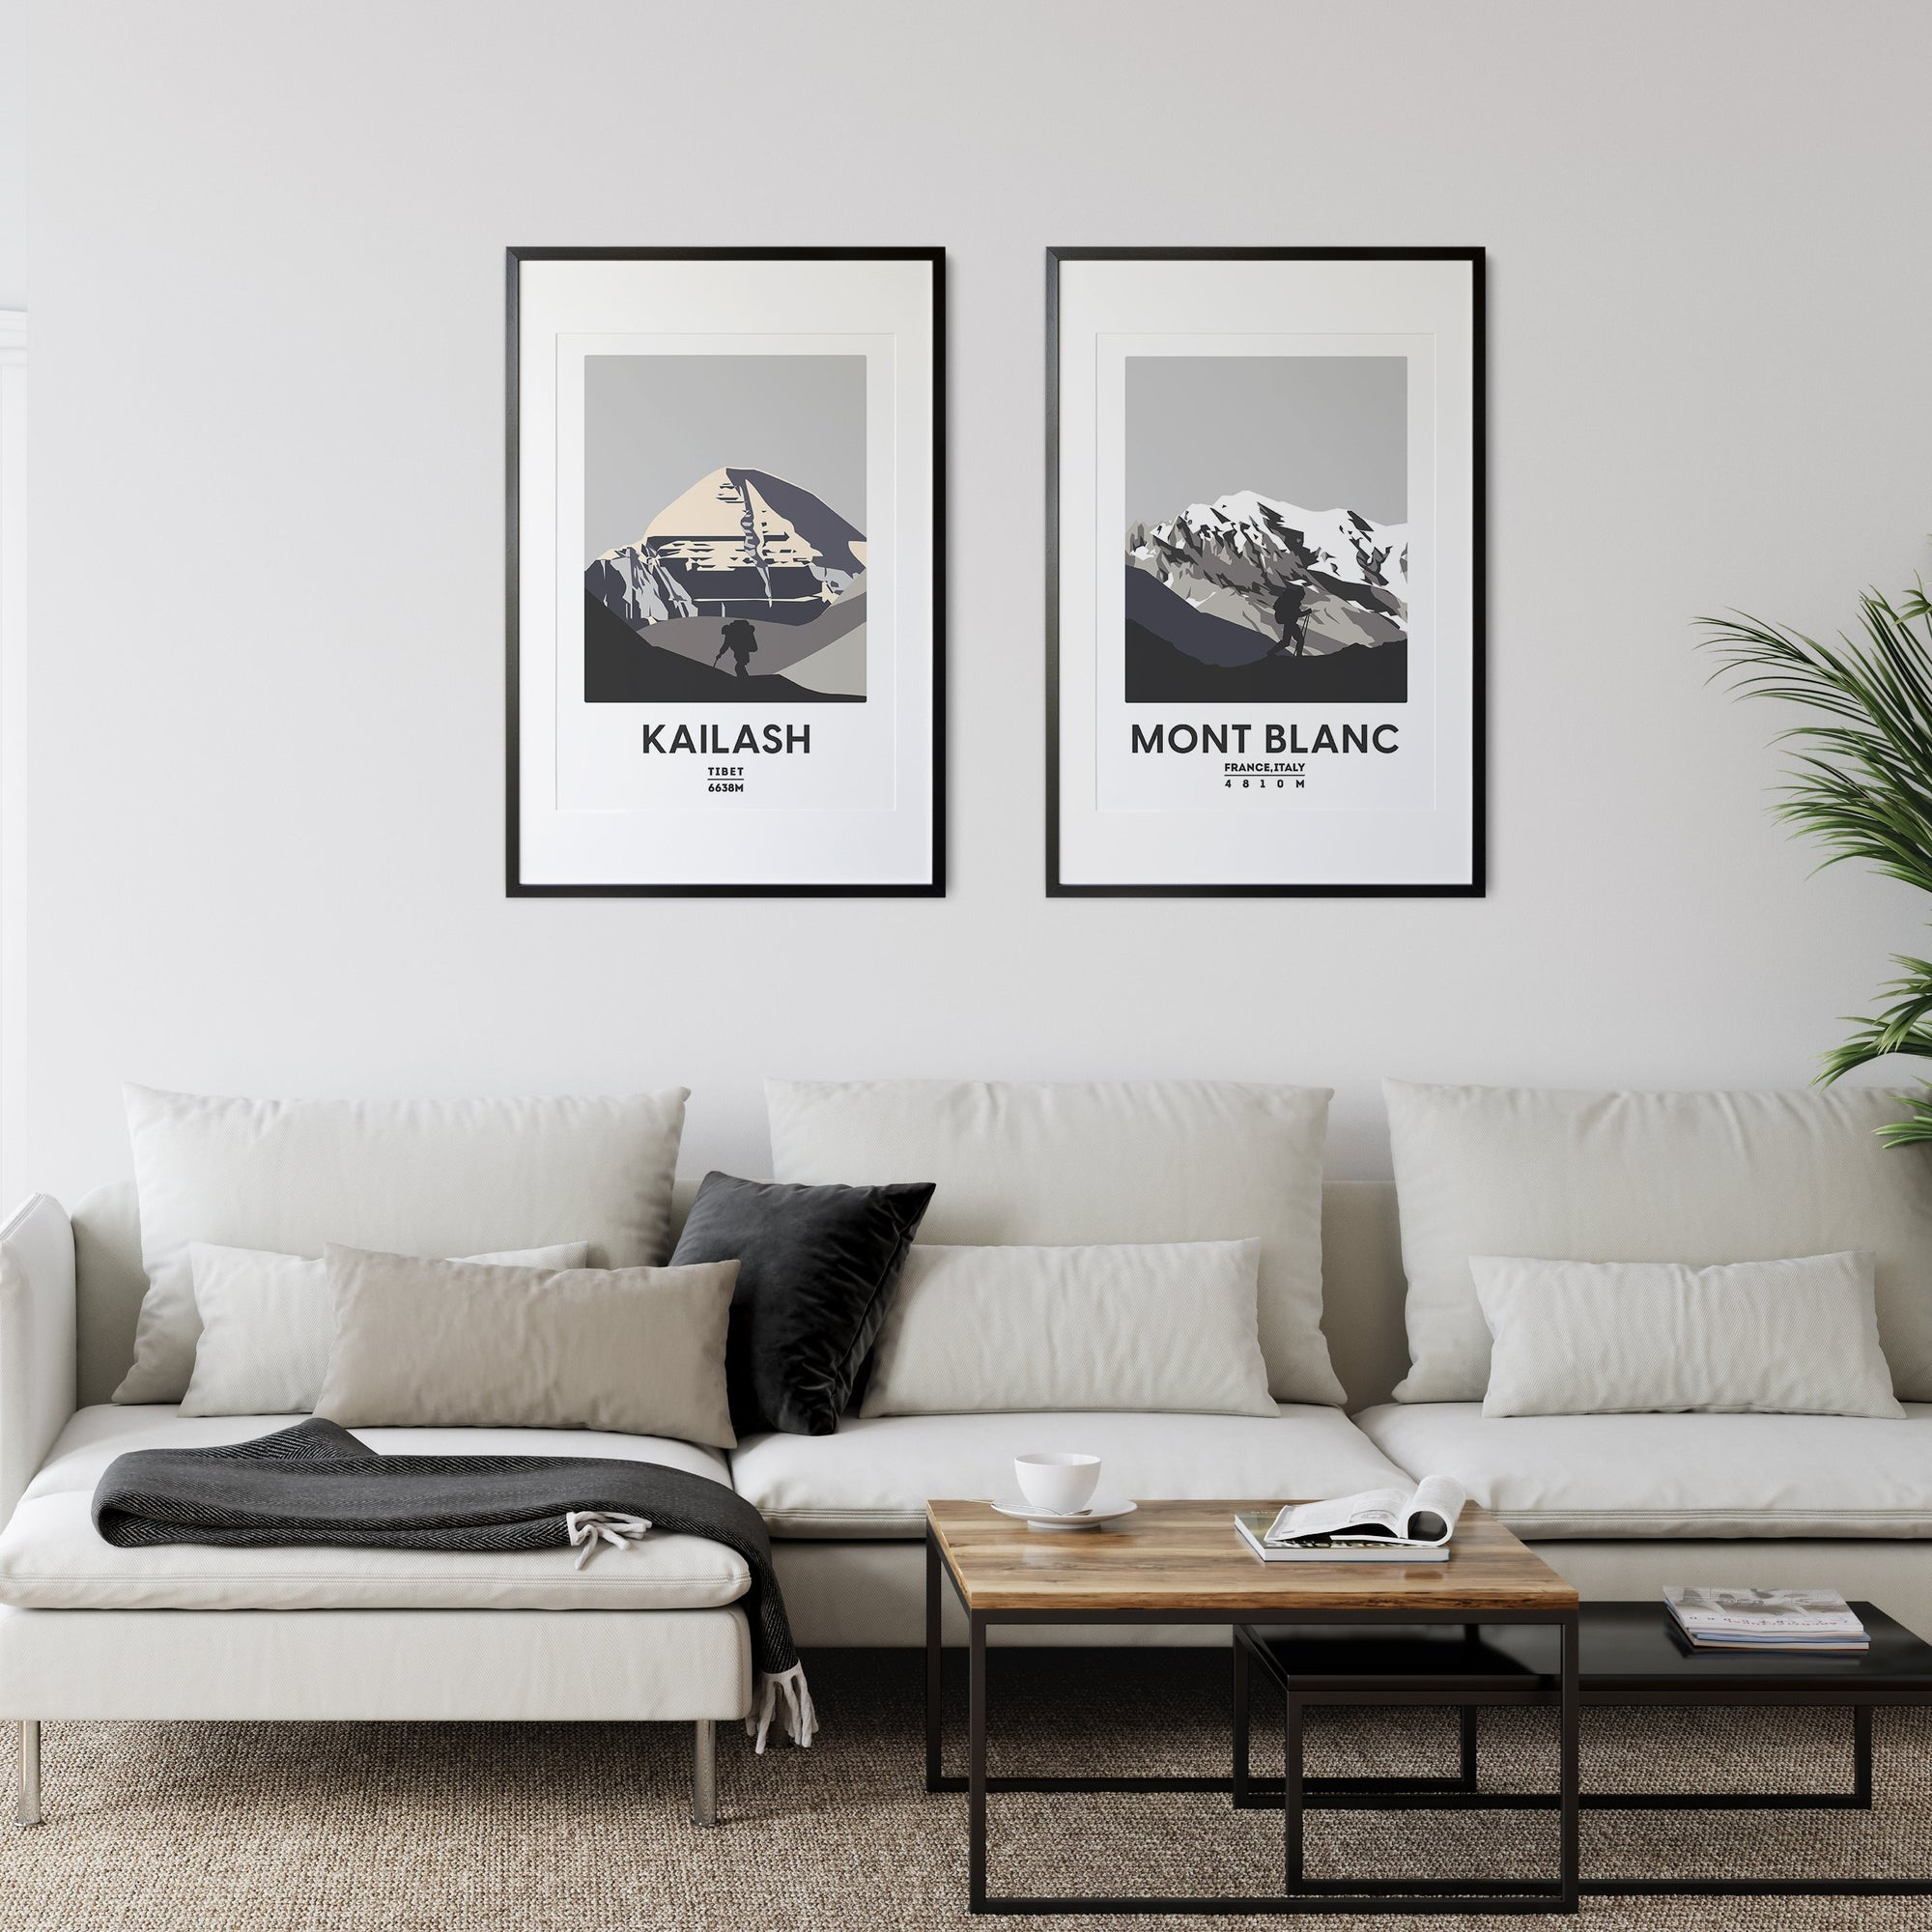 Kailash UNFRAMED ART PRINT